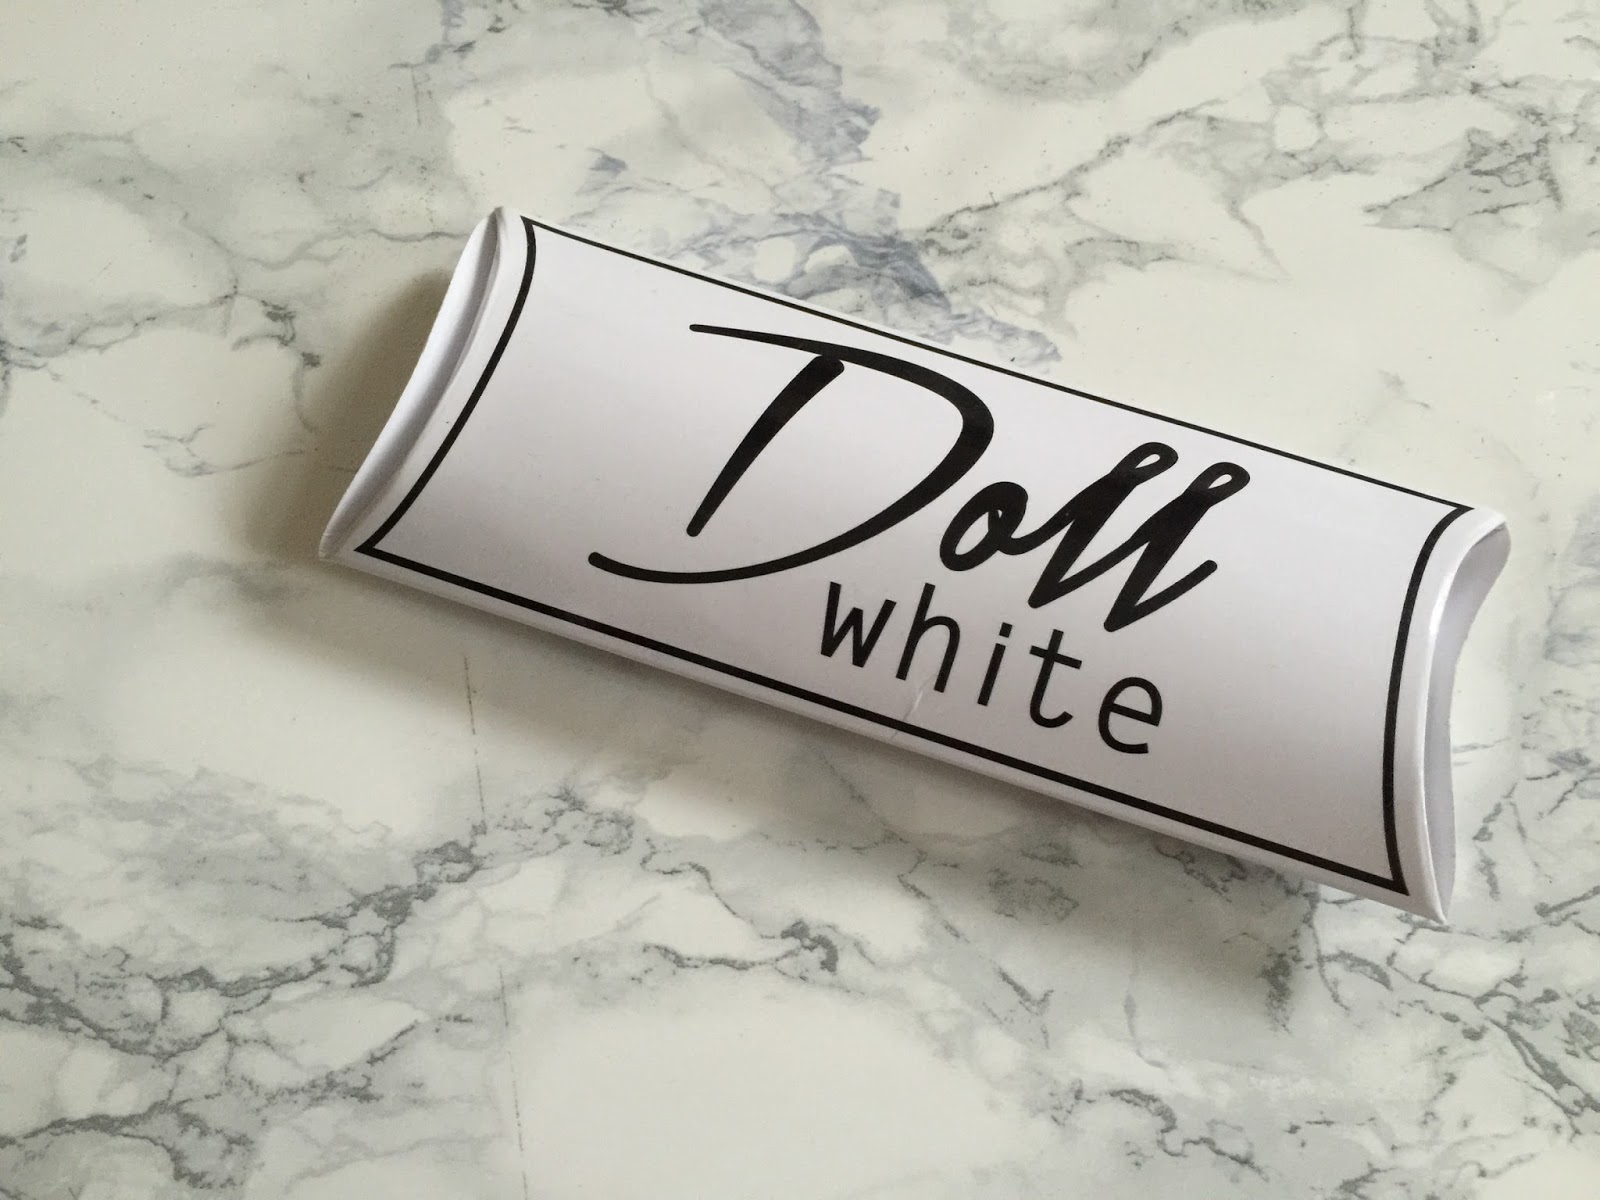 Doll White Teeth Whitening Strips – The Thoughts